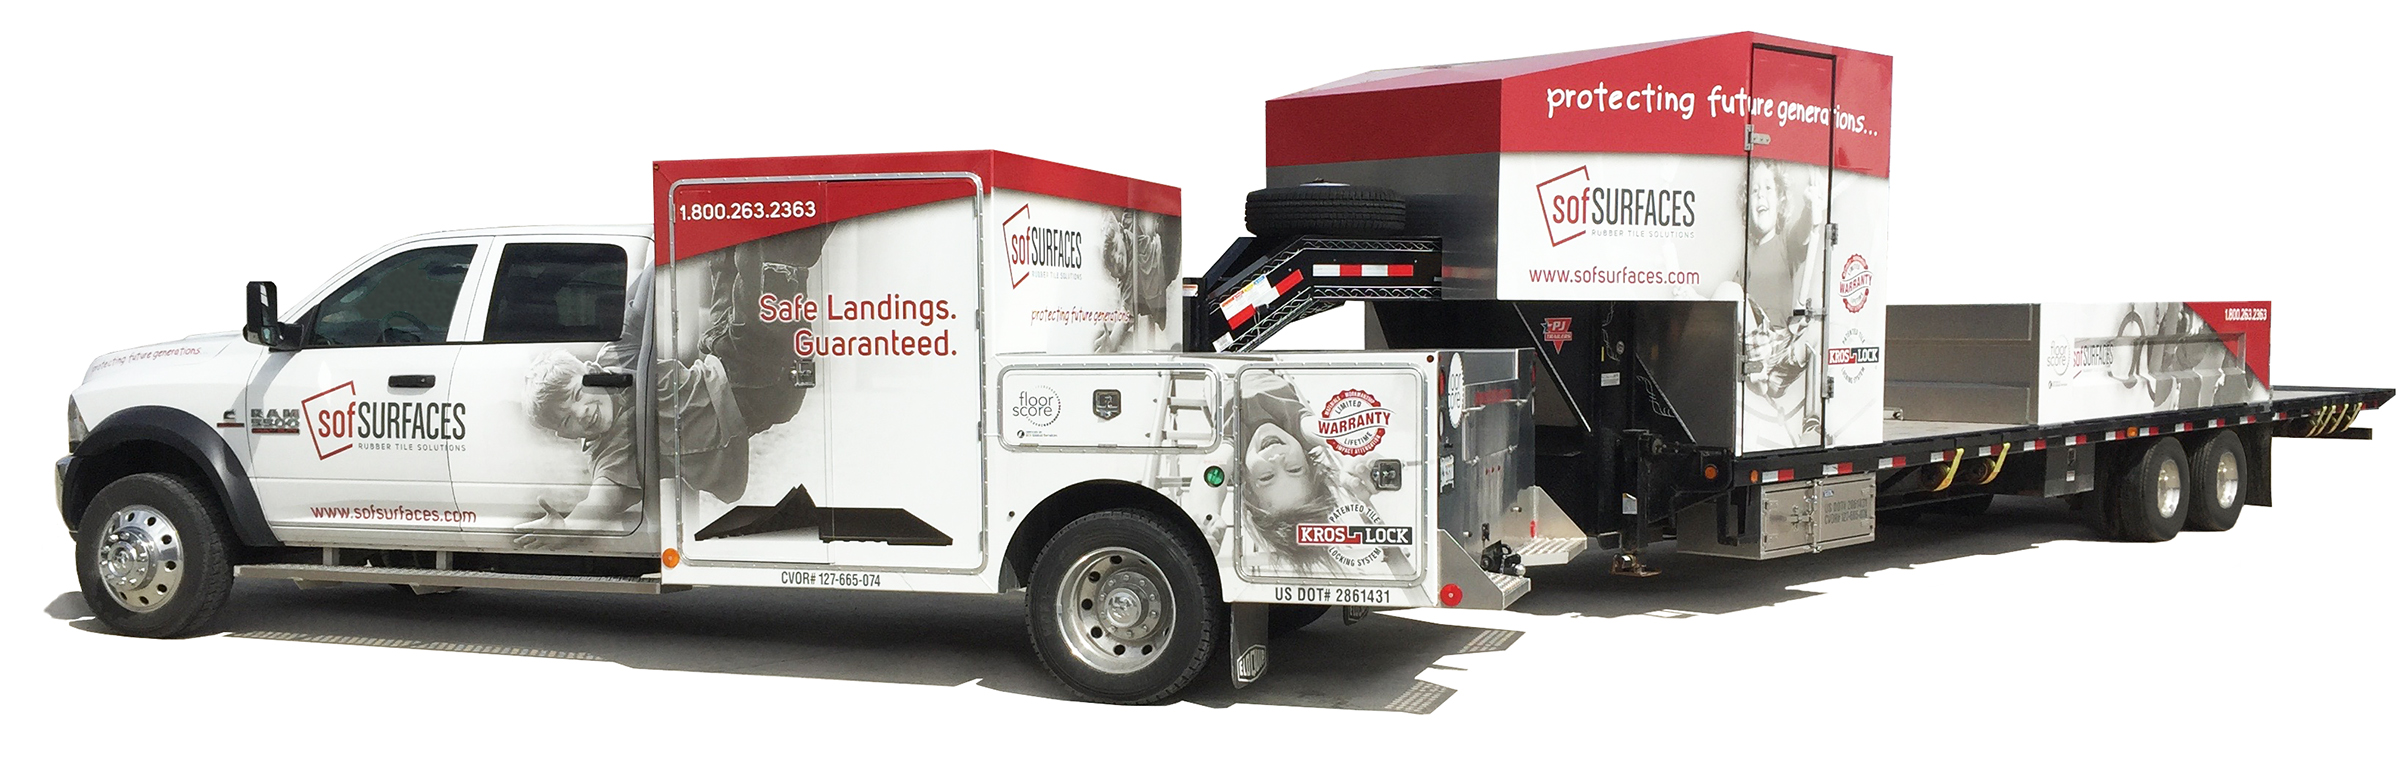 sofSURFACES Install truck and trailer